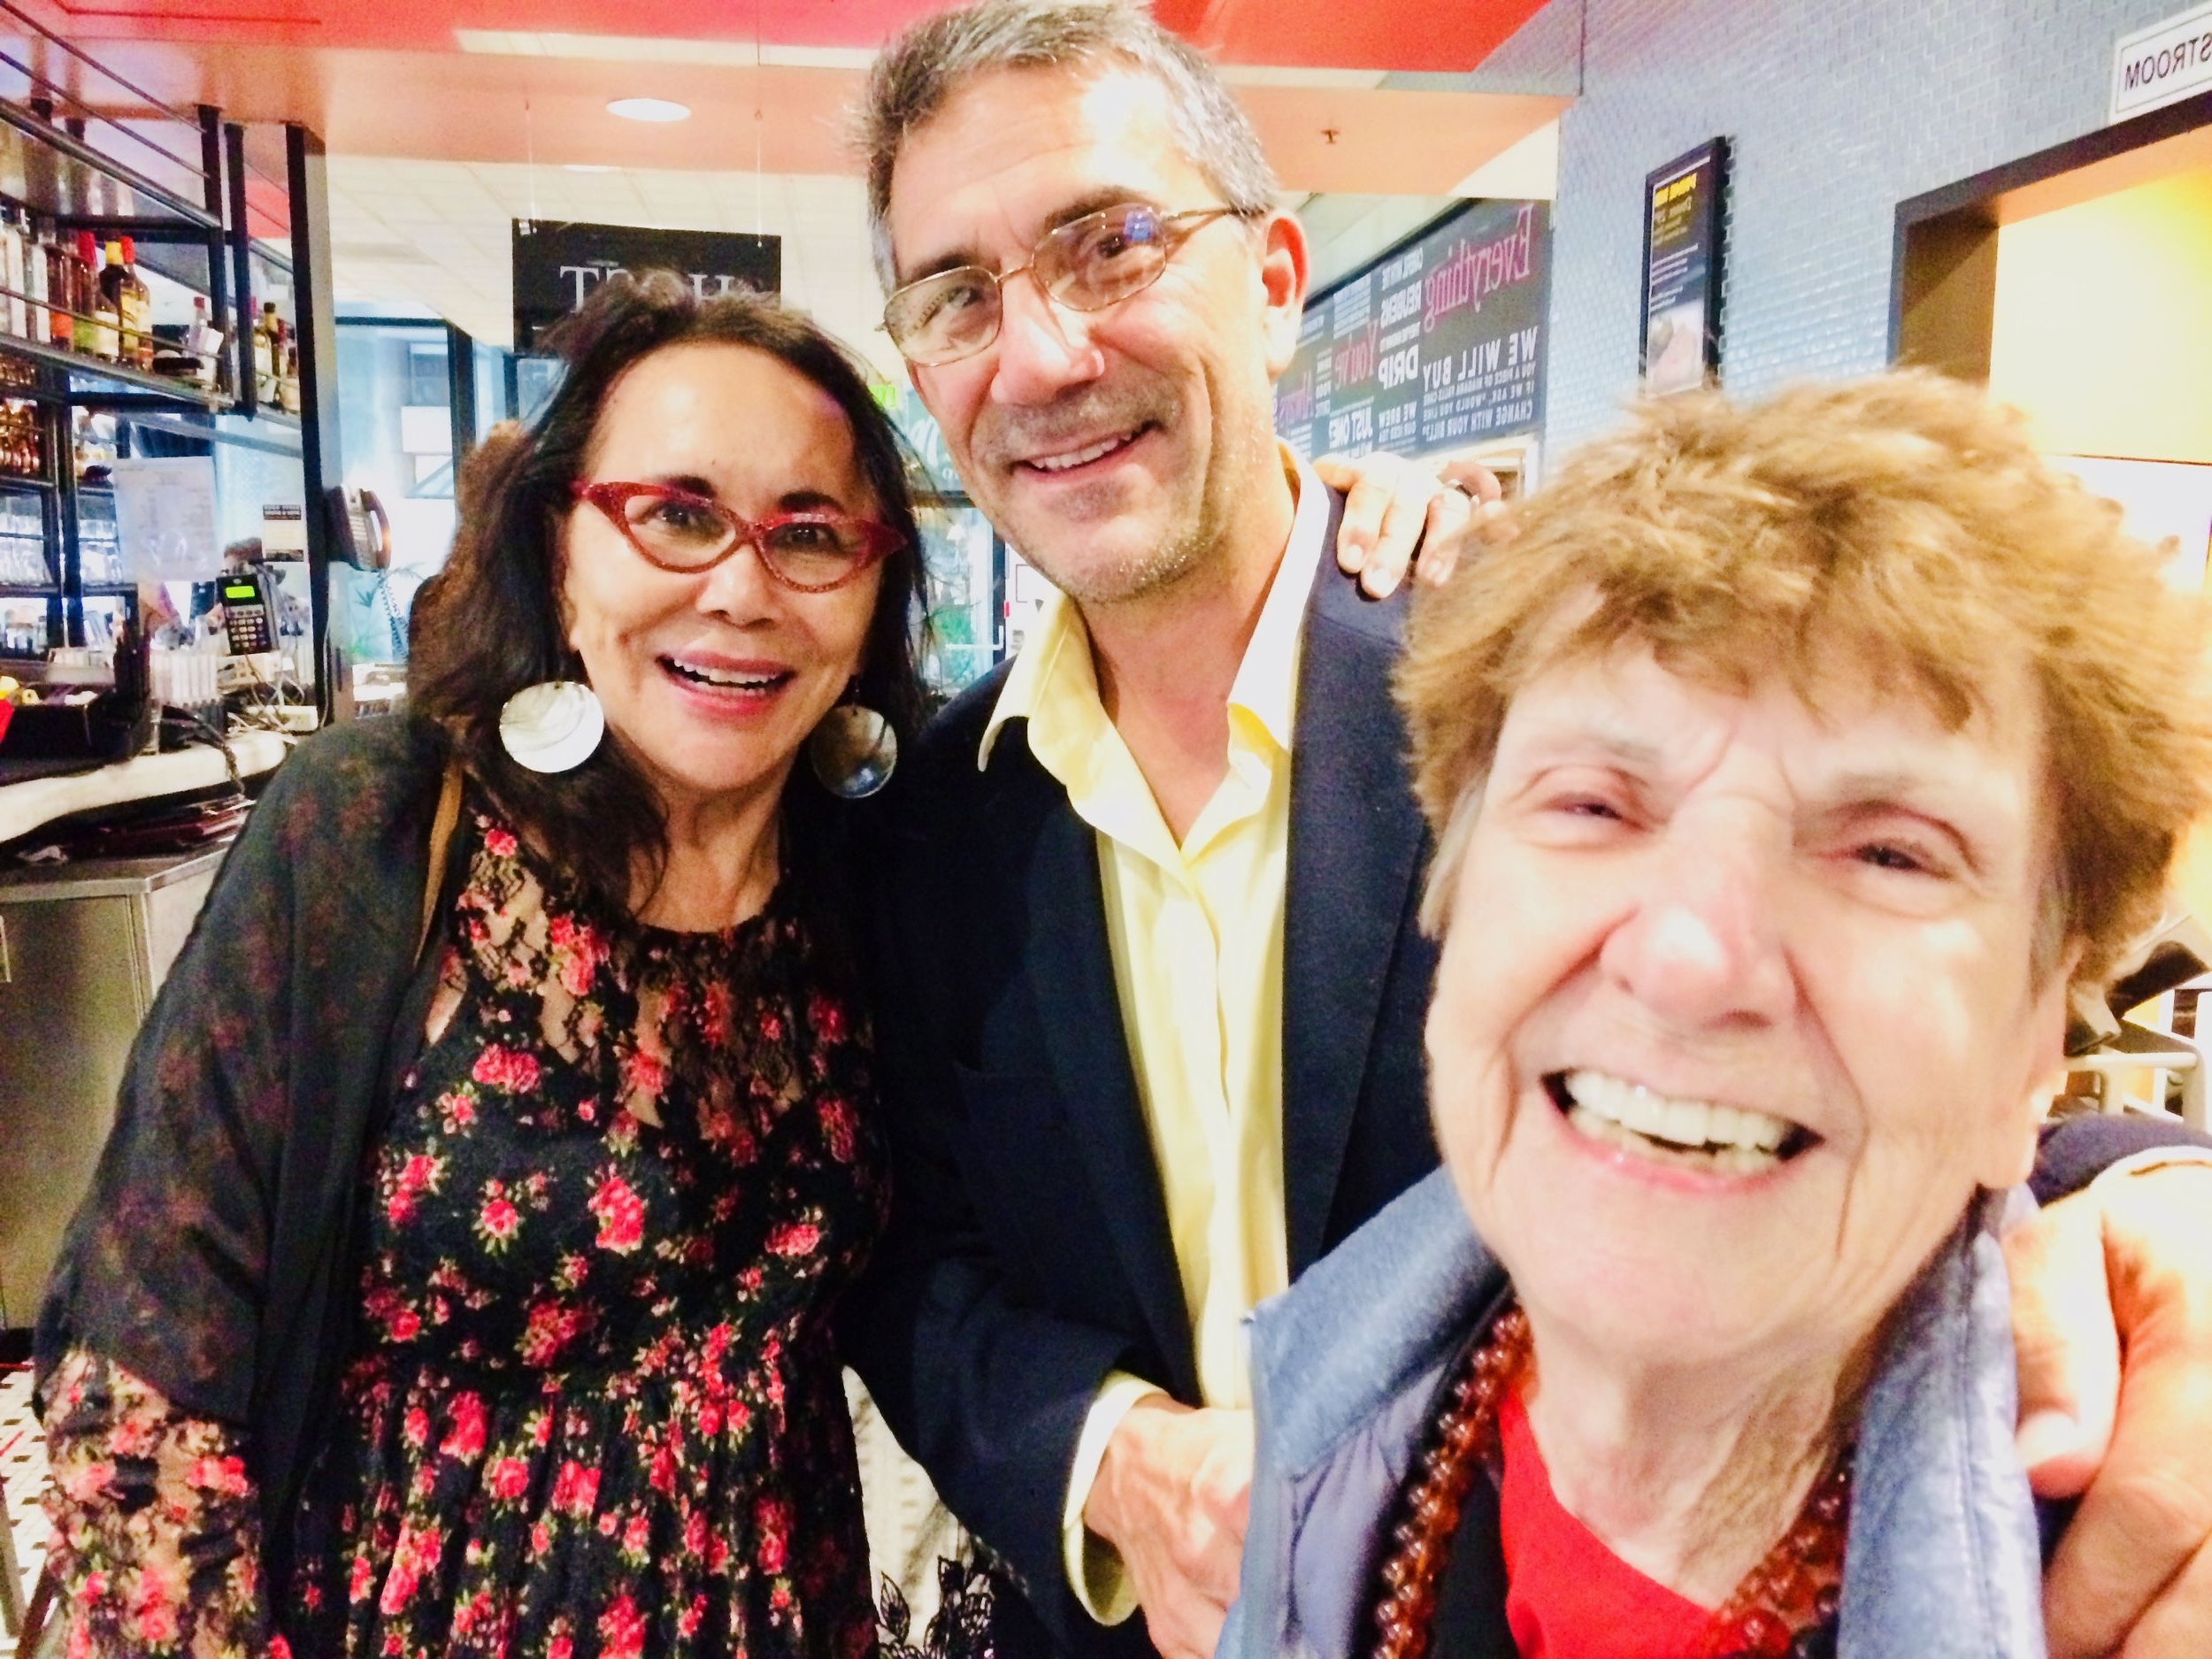 [Clockwise from left] Anita Acosta (Oscar's Sister),Marco Acosta (Oscar's son)and Betty Dowd (Oscar's first wife) share a laugh at the San Francisco Latino Film Festival afterparty inside Max's Opera Cafe.